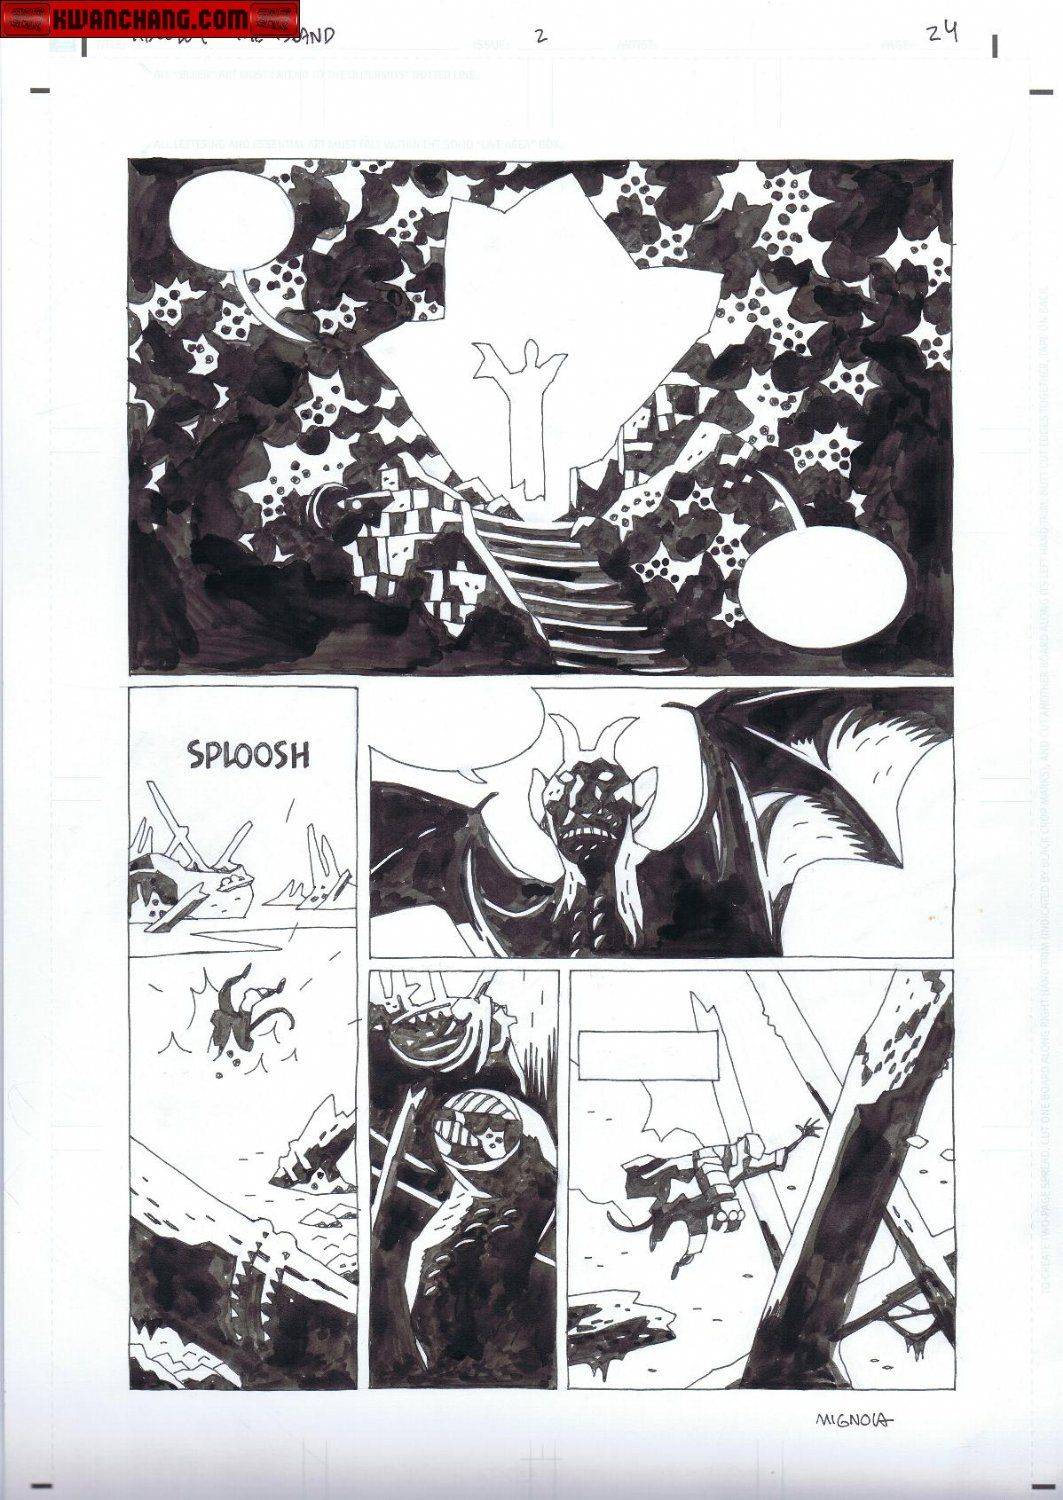 Kwan Chang :: For Sale Artwork :: Hellboy : The Island by artist Mike Mignola